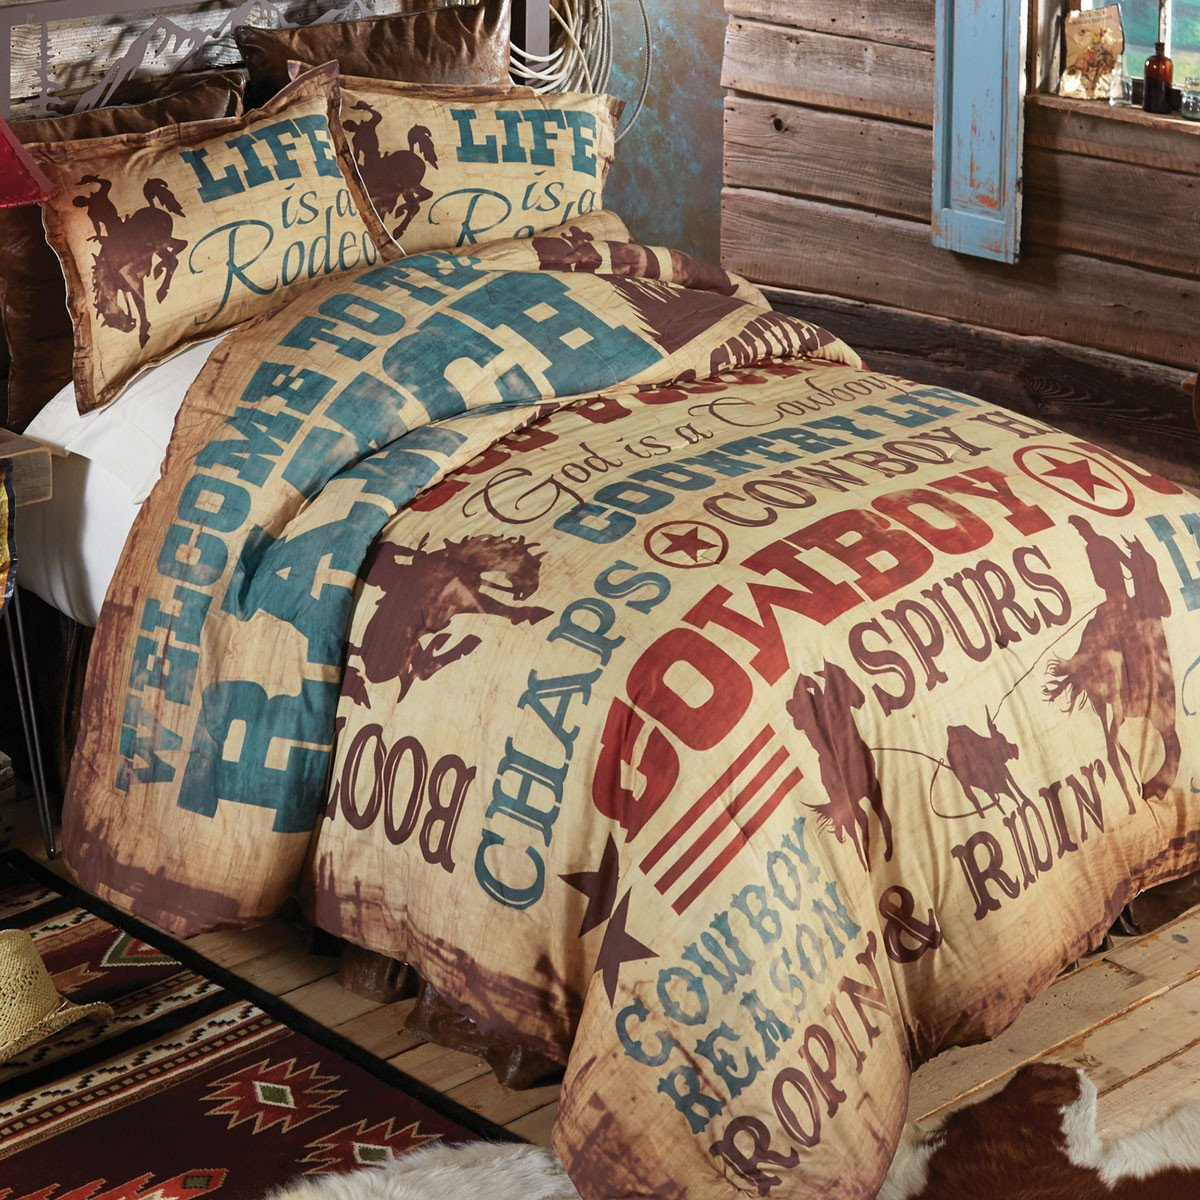 Denver Broncos Bedroom Set Best Of Cowboy Lifestyle forter Queen